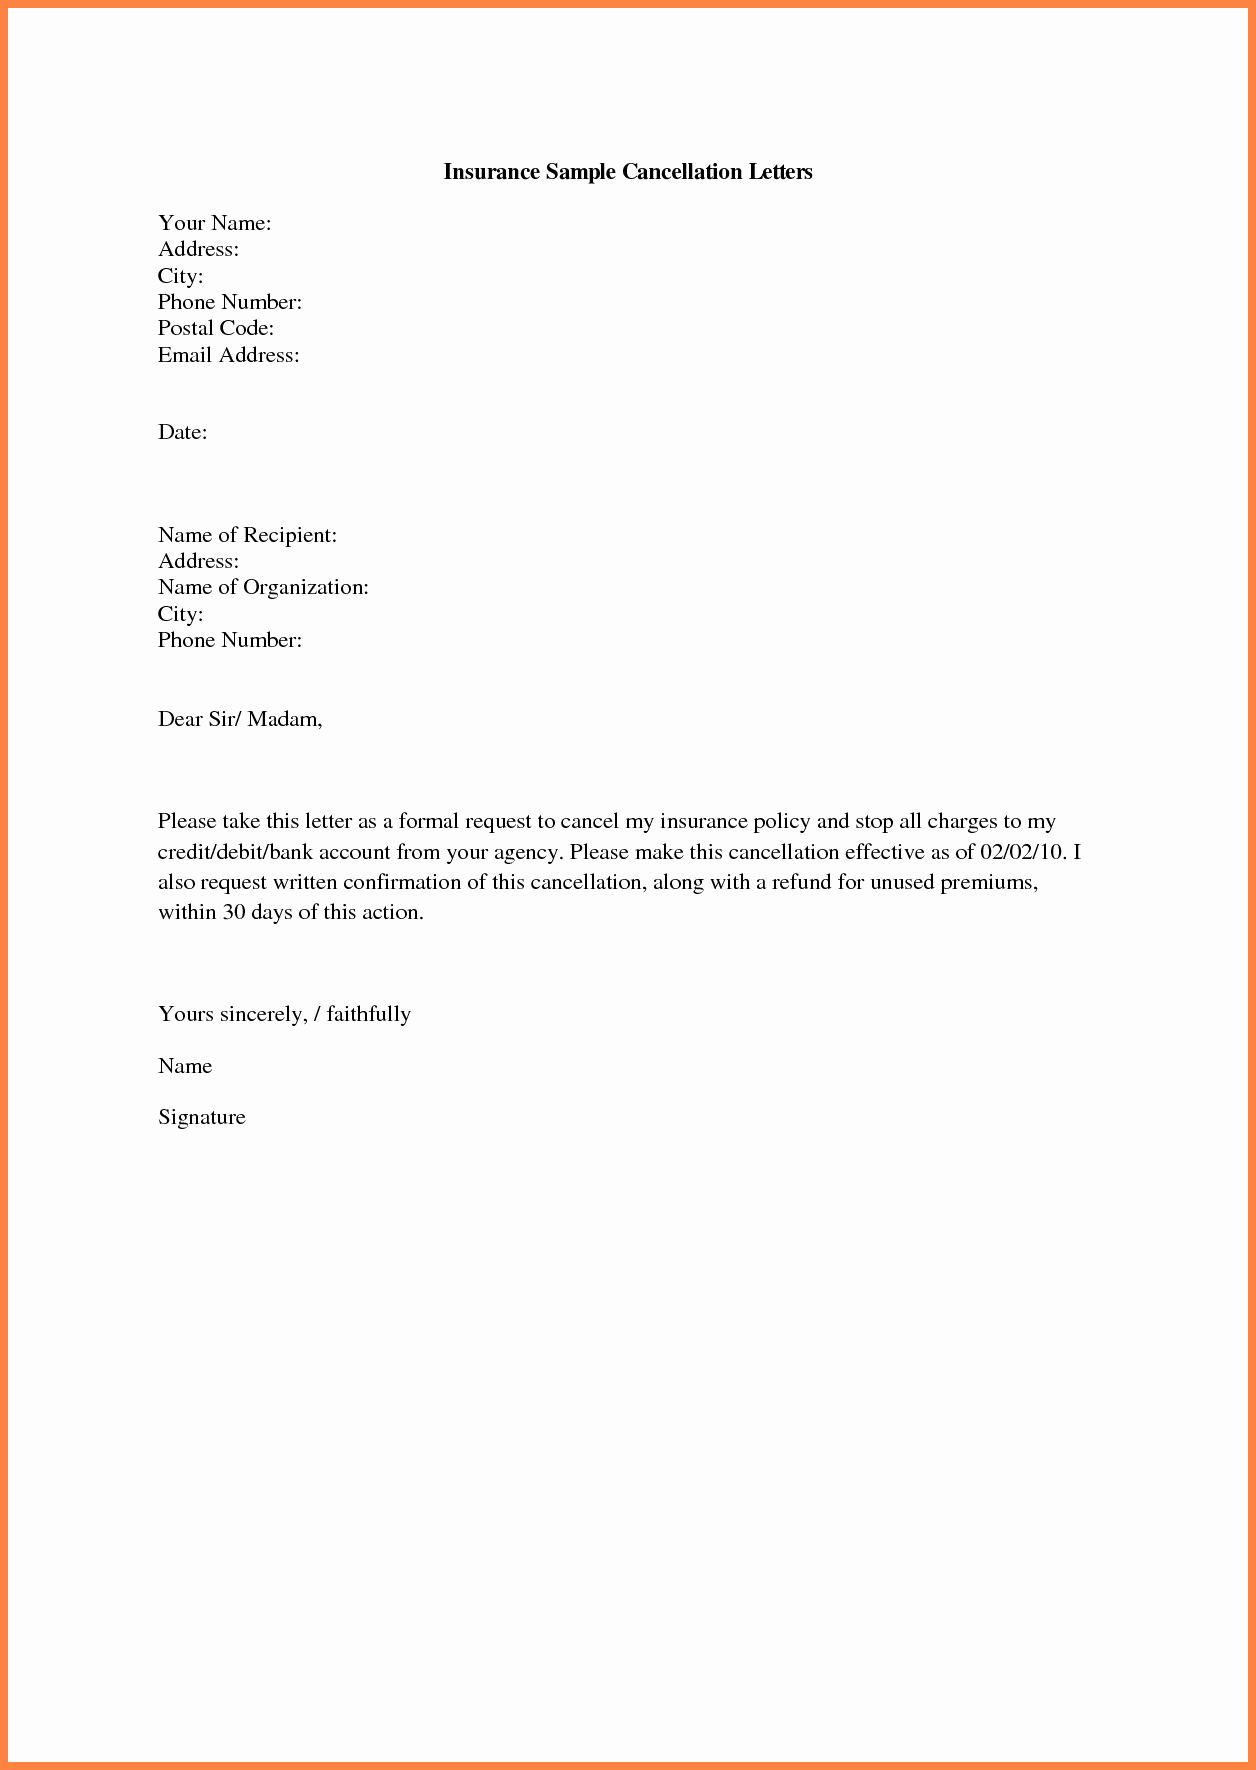 Insurance Cancellation Letter Template Lovely 6 Insurance Cancellation Notice Sample